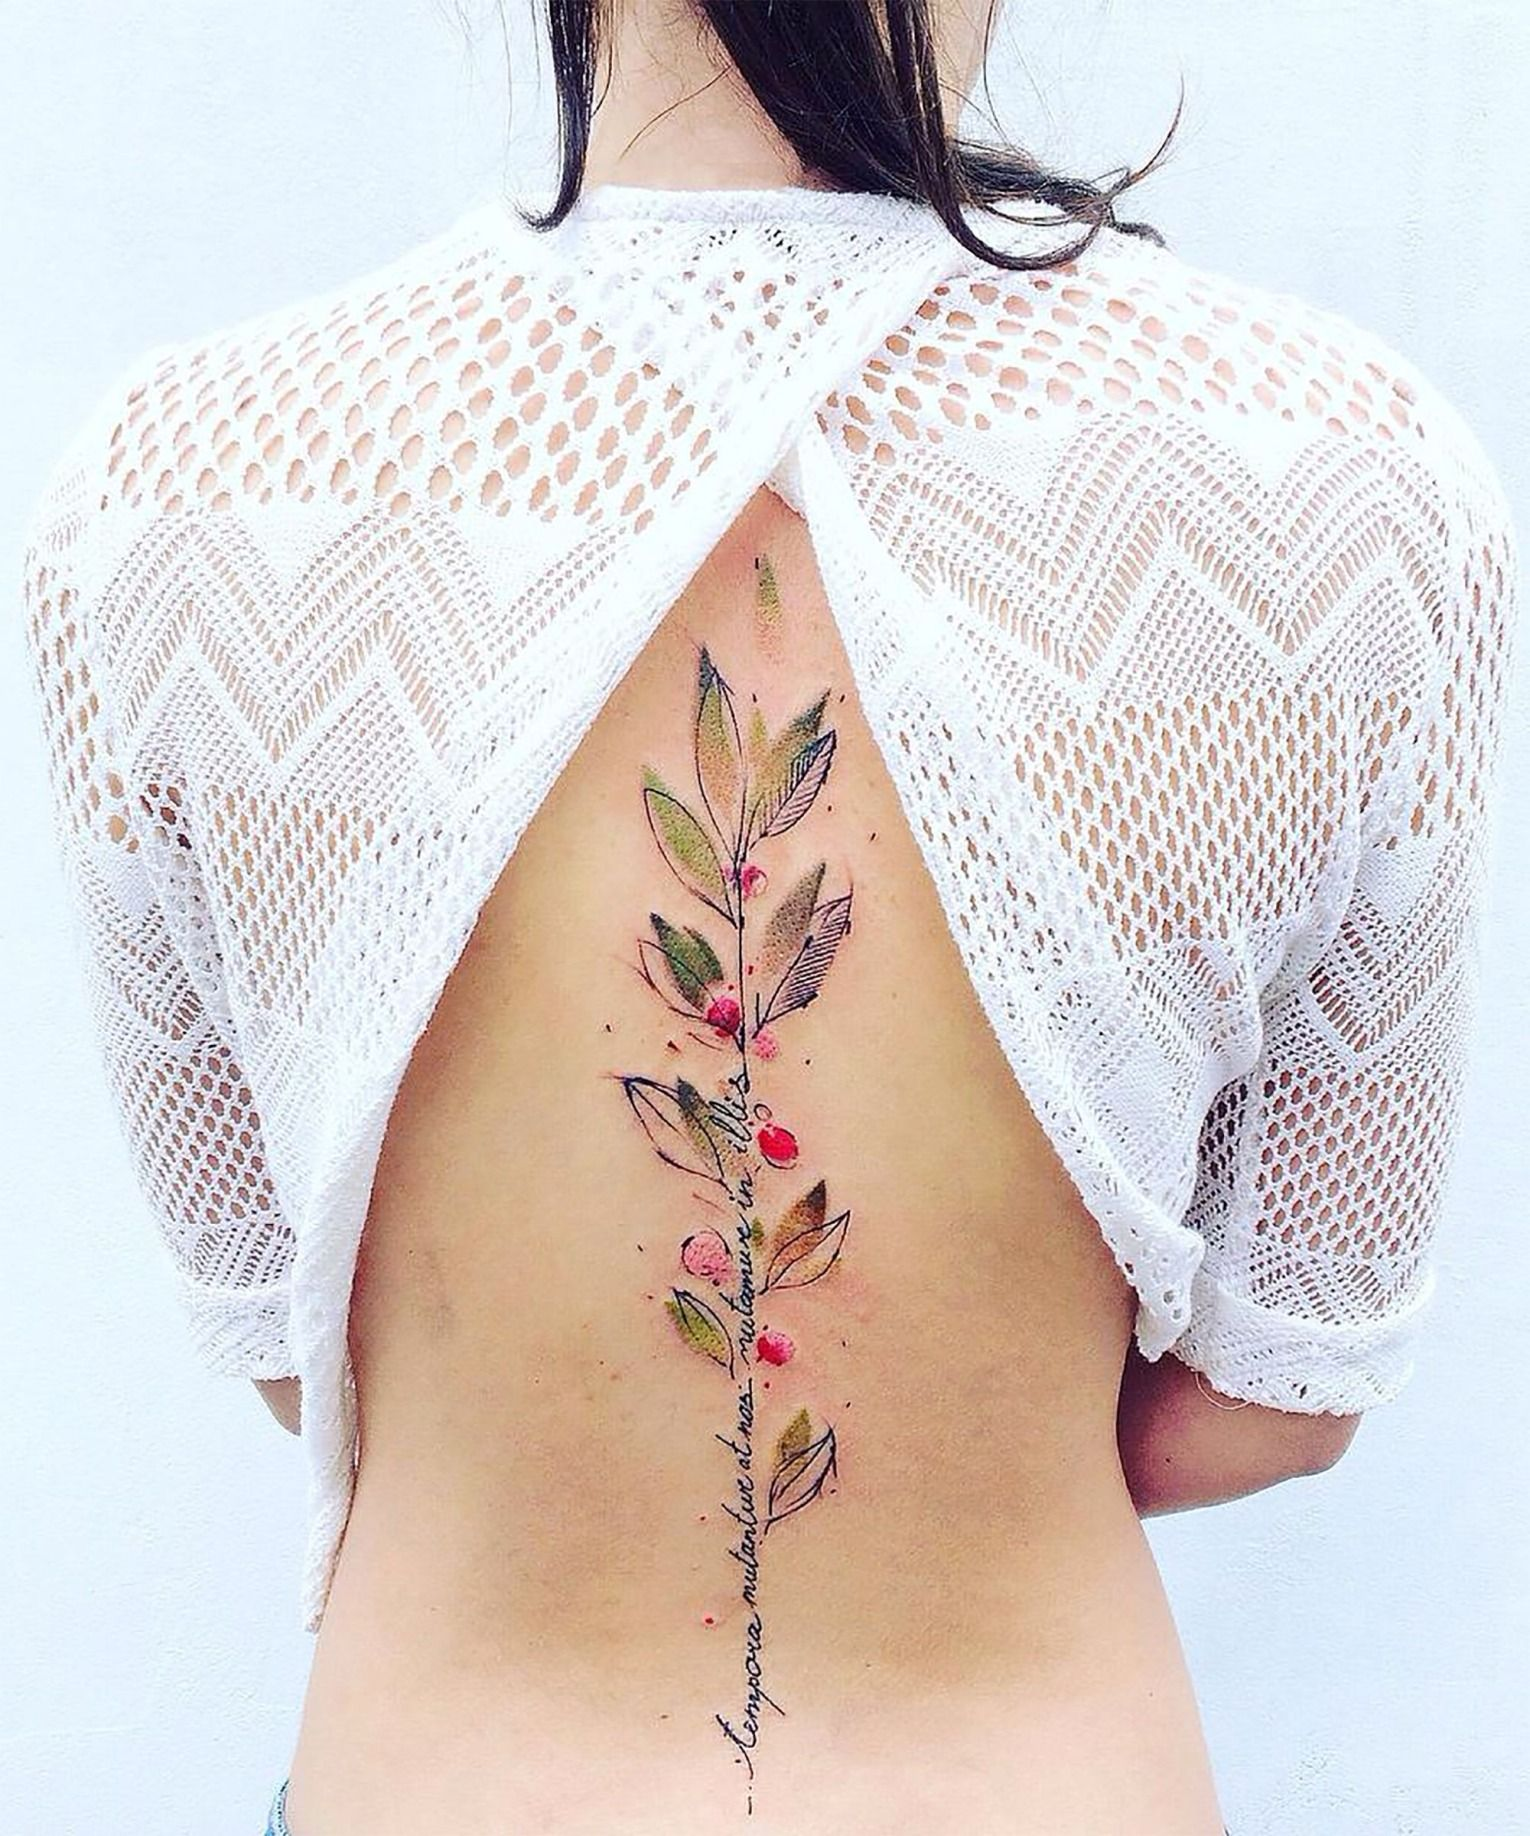 This new tattoo trend is simply gorgeous!